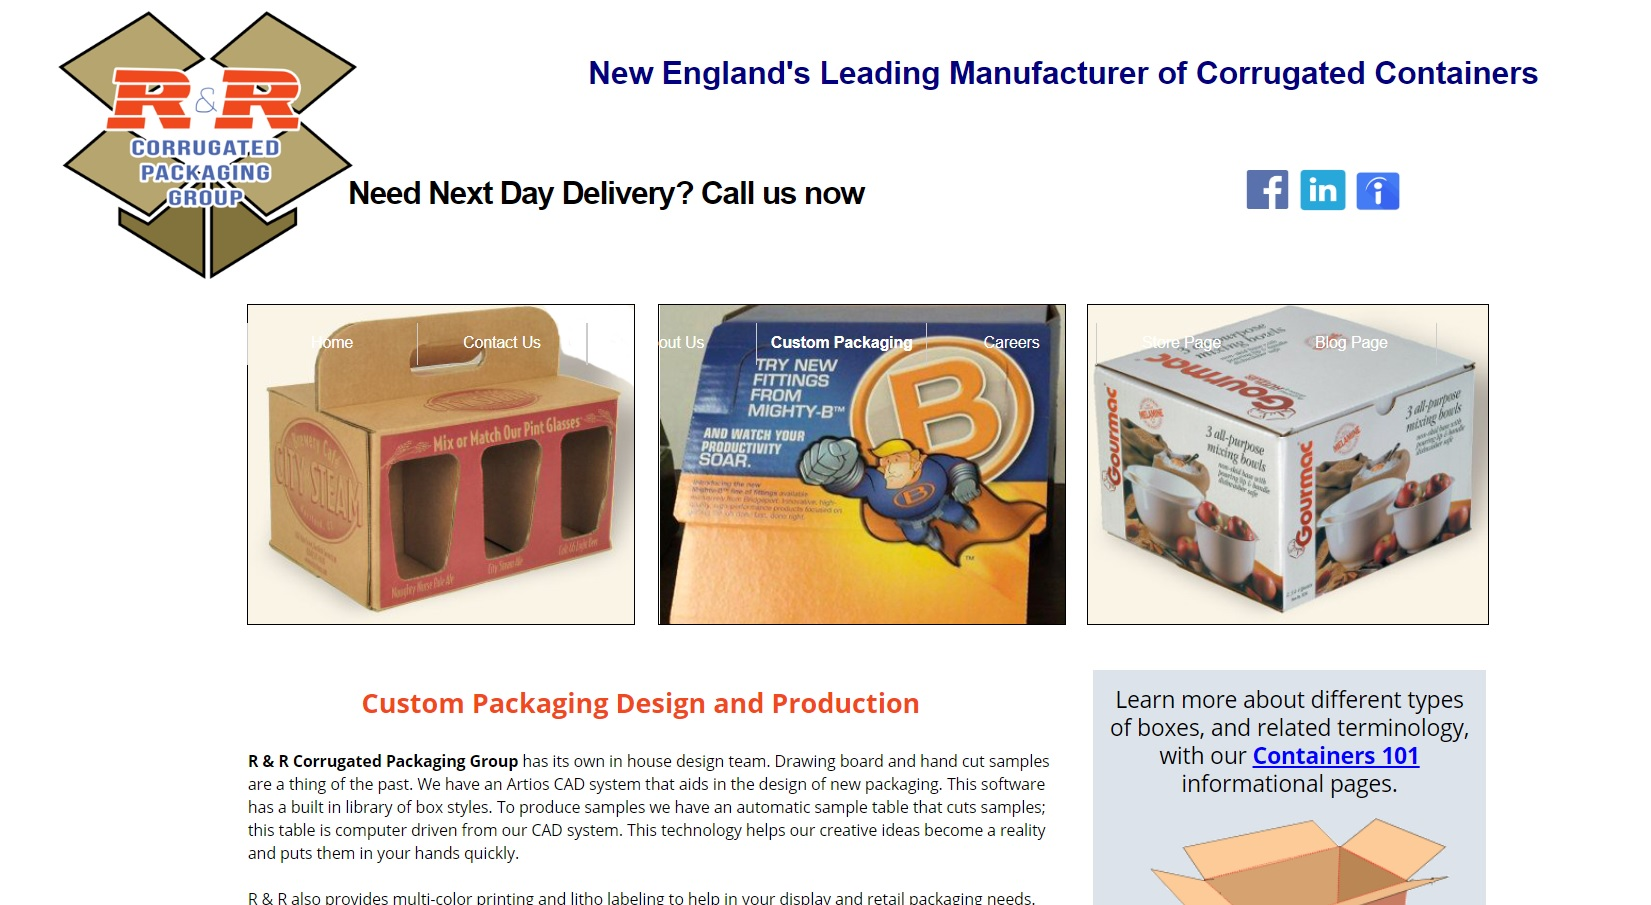 R & R Corrugated Packaging Group